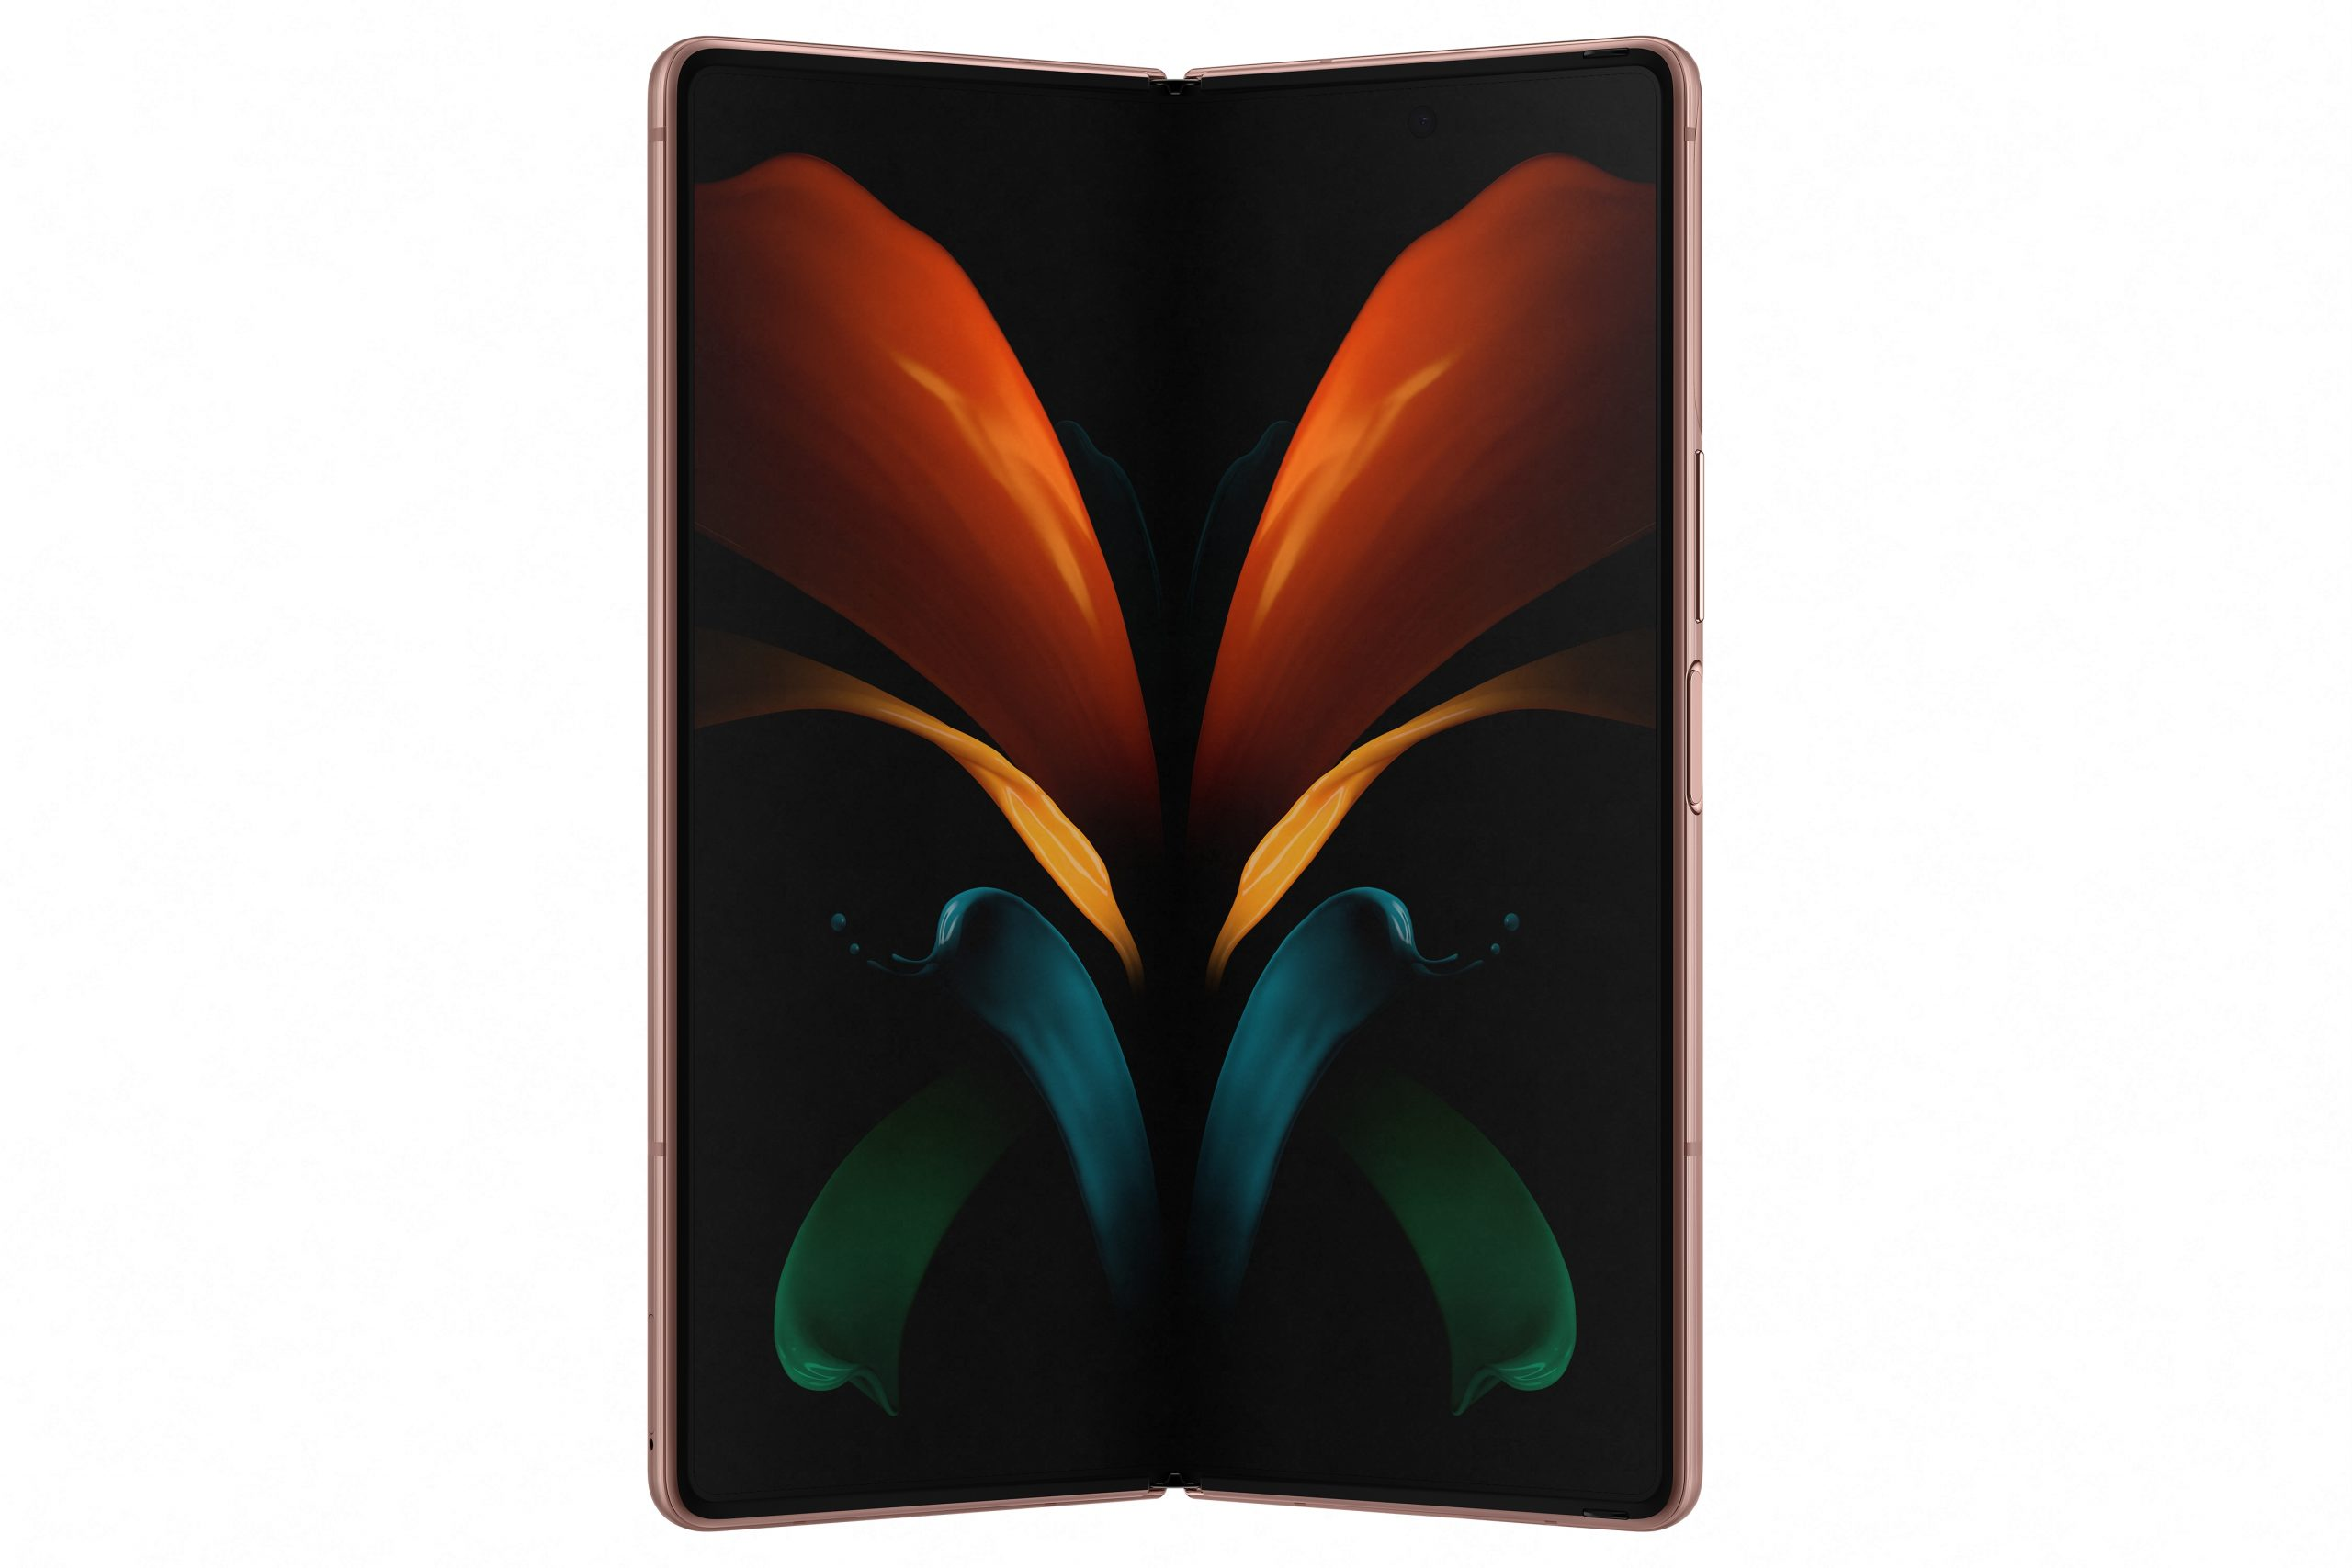 Samsung Galaxy Z Fold2: Bigger displays, sturdier design and better cameras 1